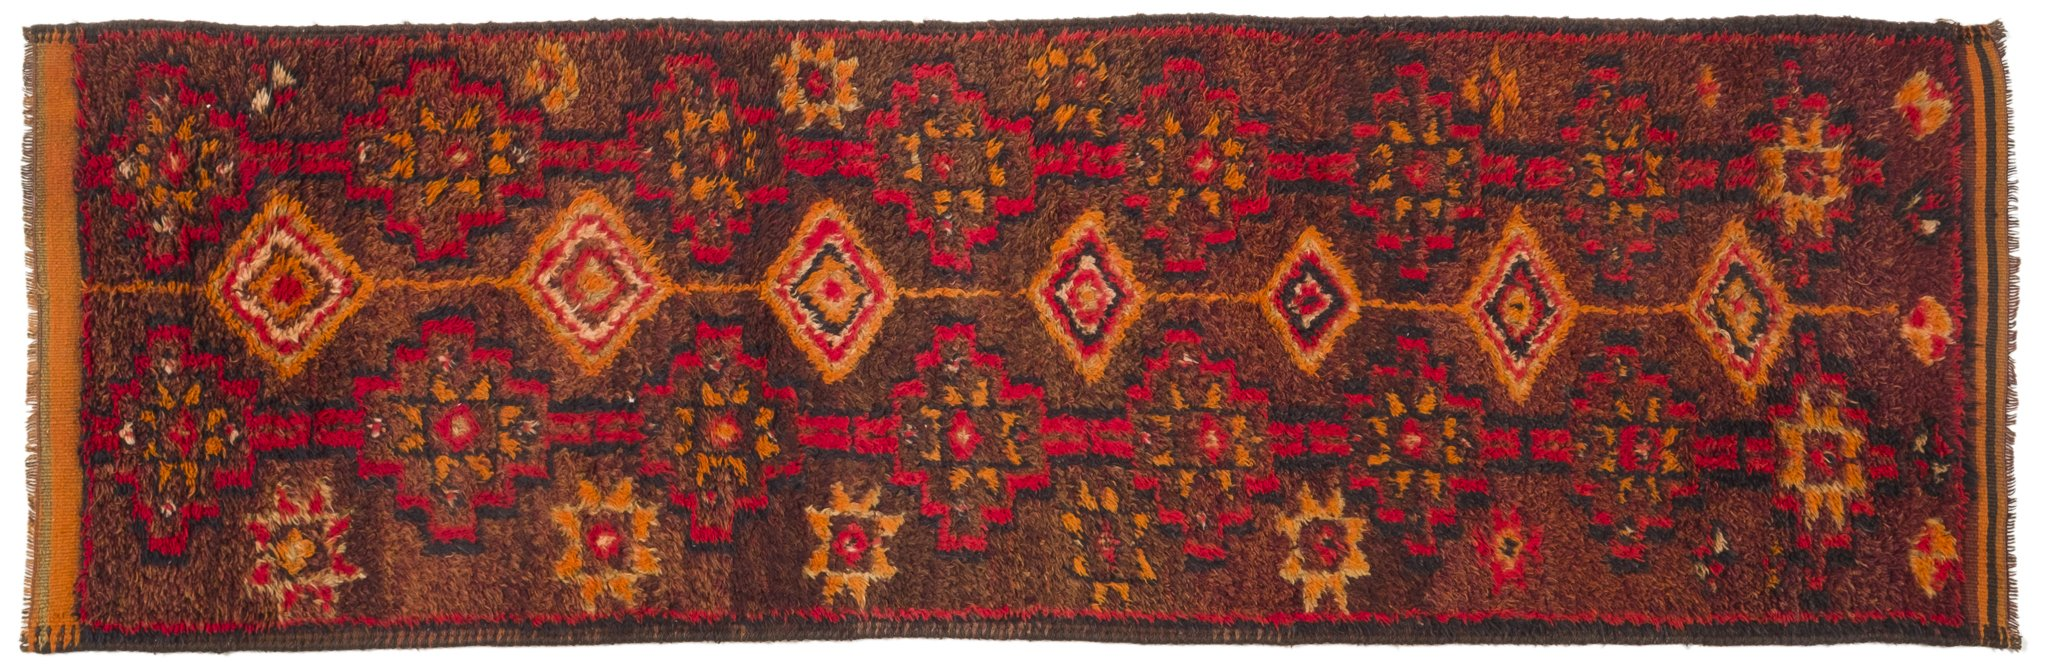 Vintage Turkish Runner Rug Burckhardt